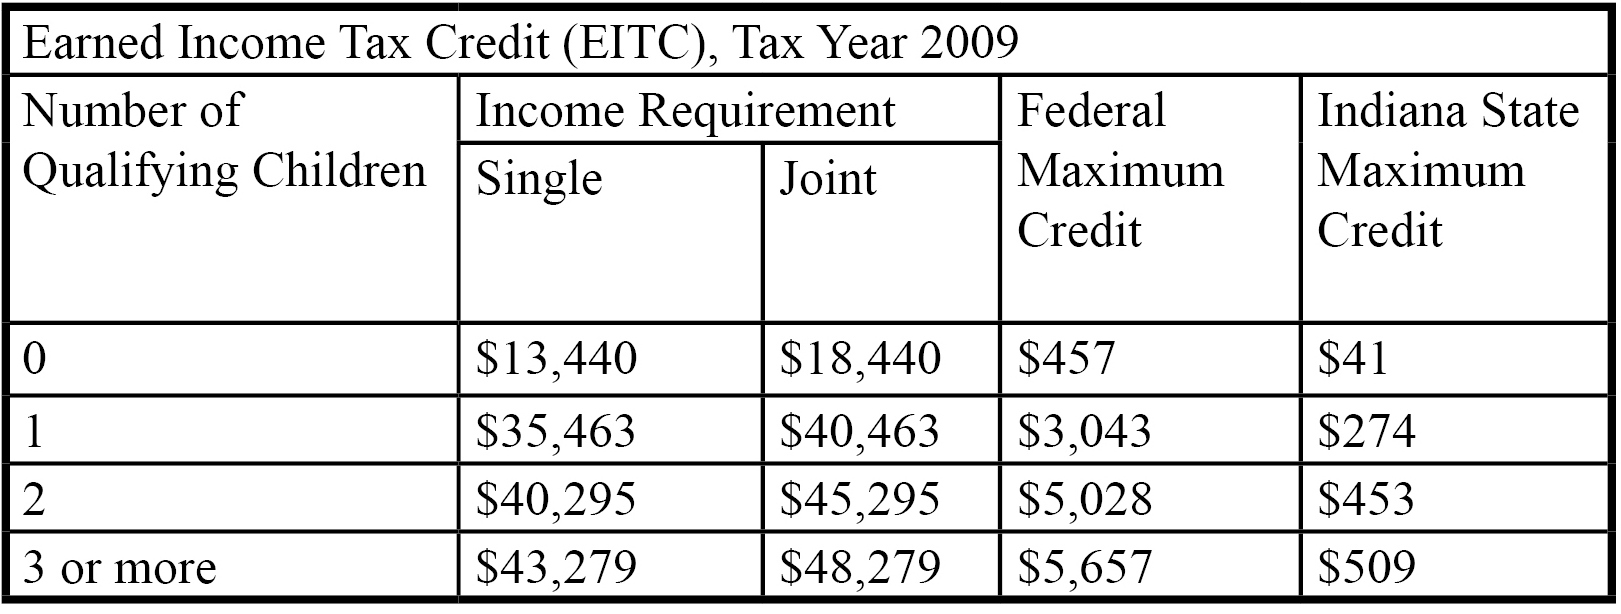 worksheet Eic Worksheet 2013 earned income credit table 2009 comthe tax credit